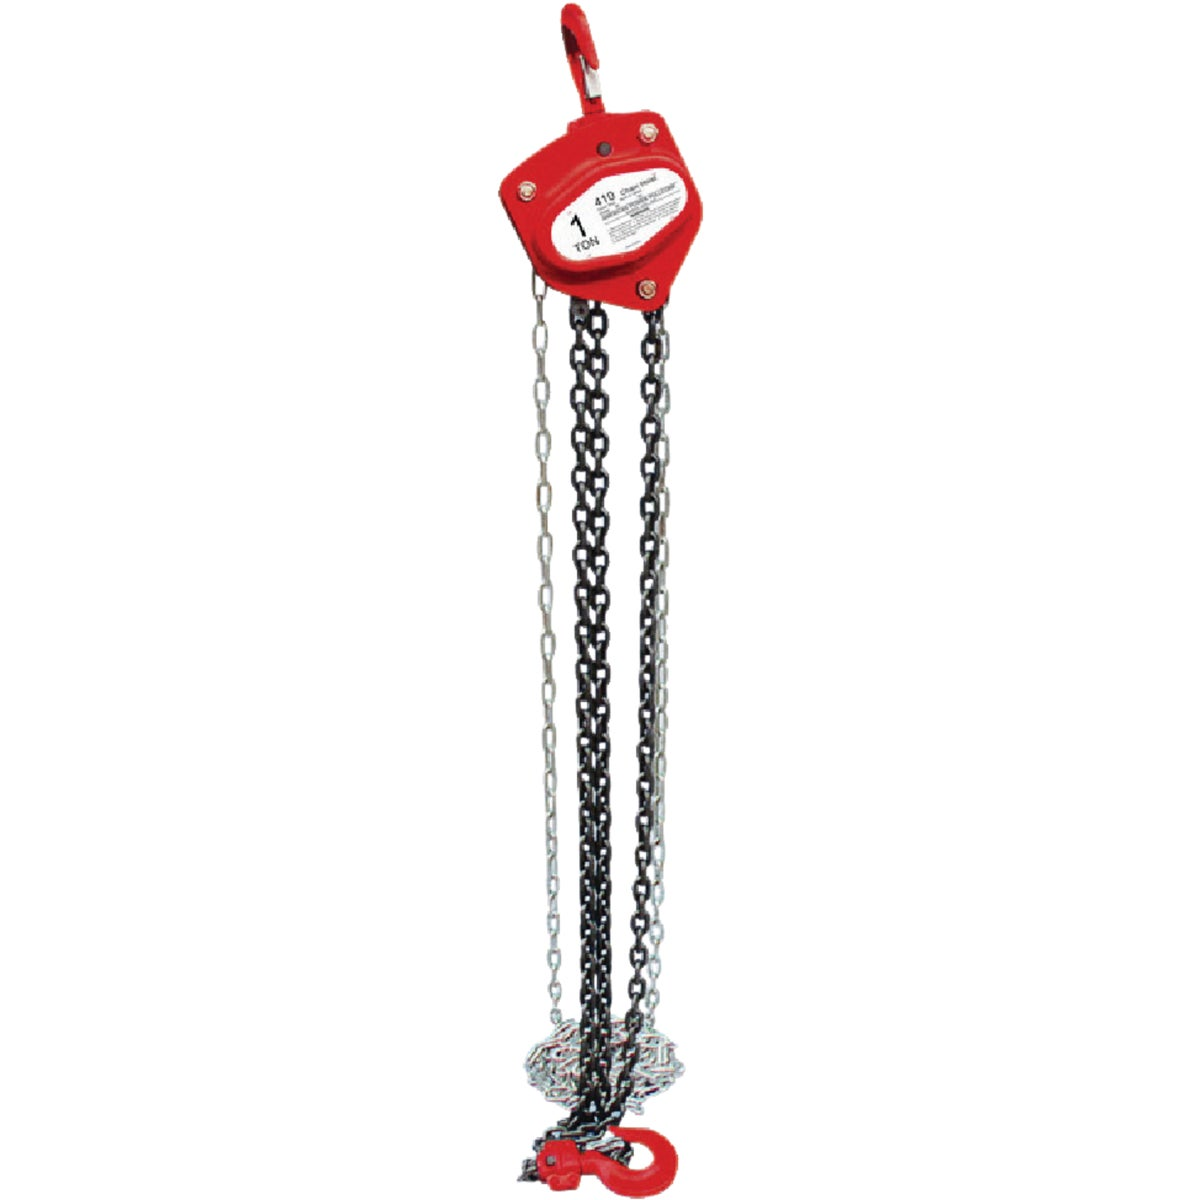 1 TON CHAIN BLOCK LIFT - 48510 by Pull R Holdings